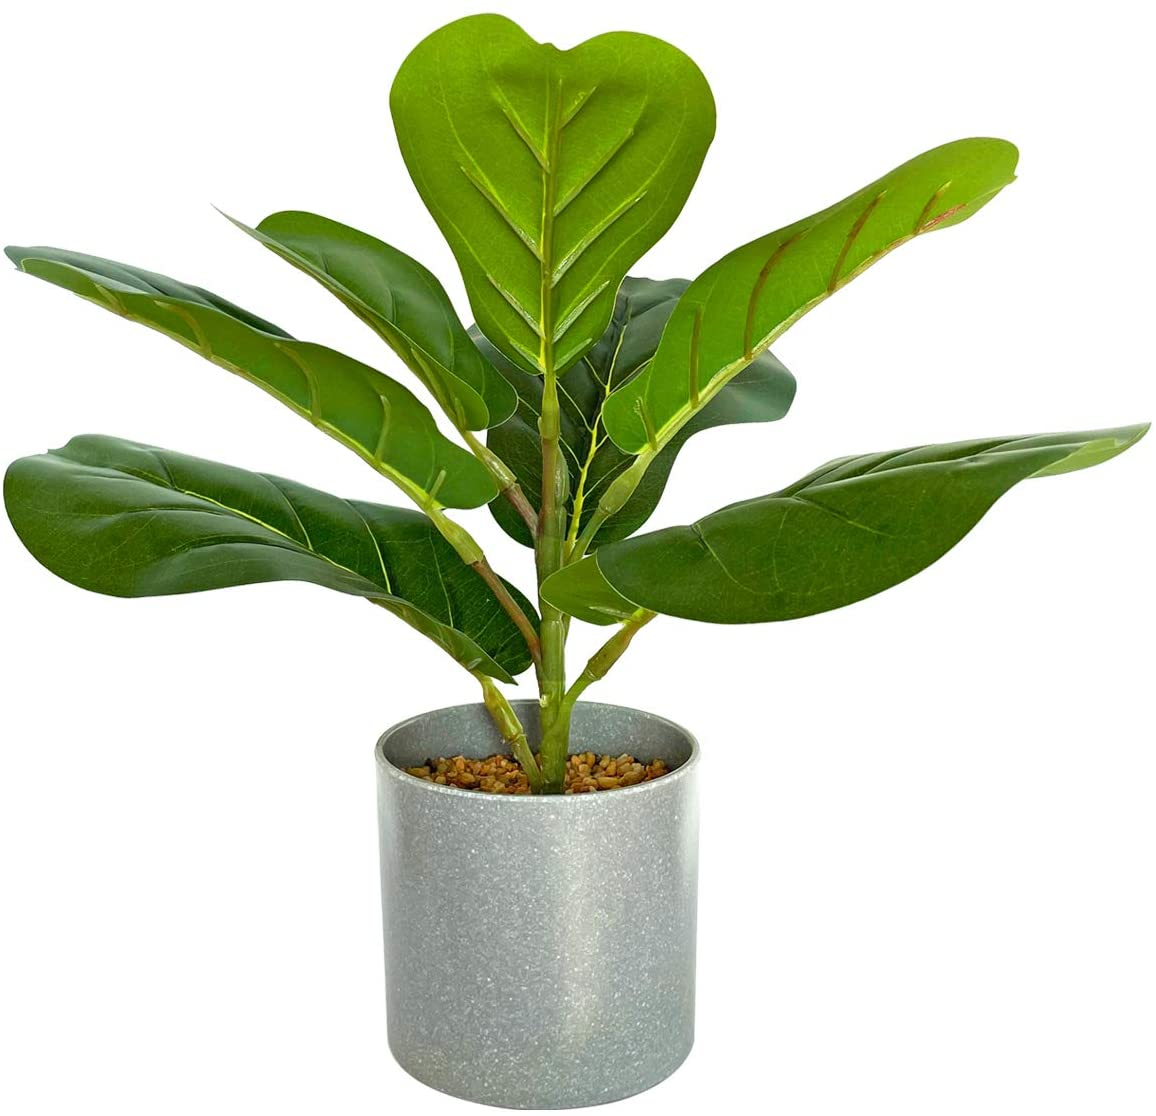 Fake-potted-plant-fig-leaves